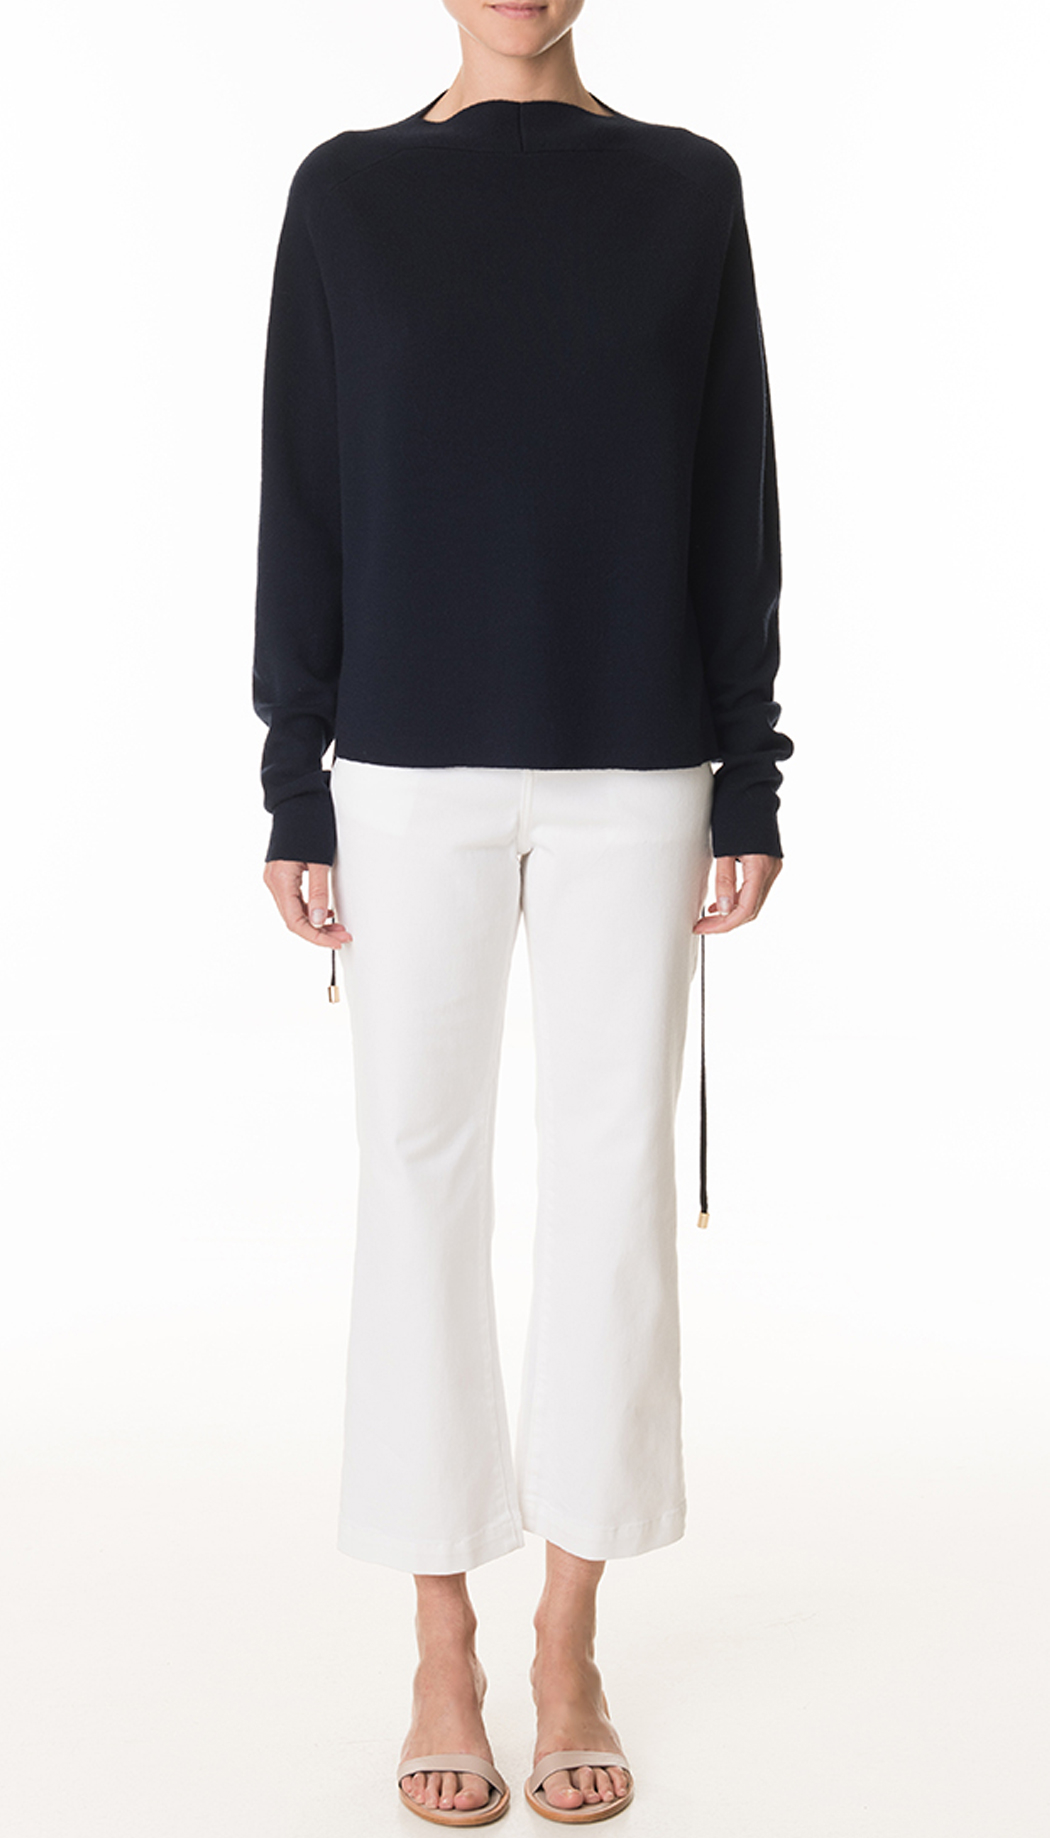 Tibi White Denim Cropped Flare Jeans in White | Lyst